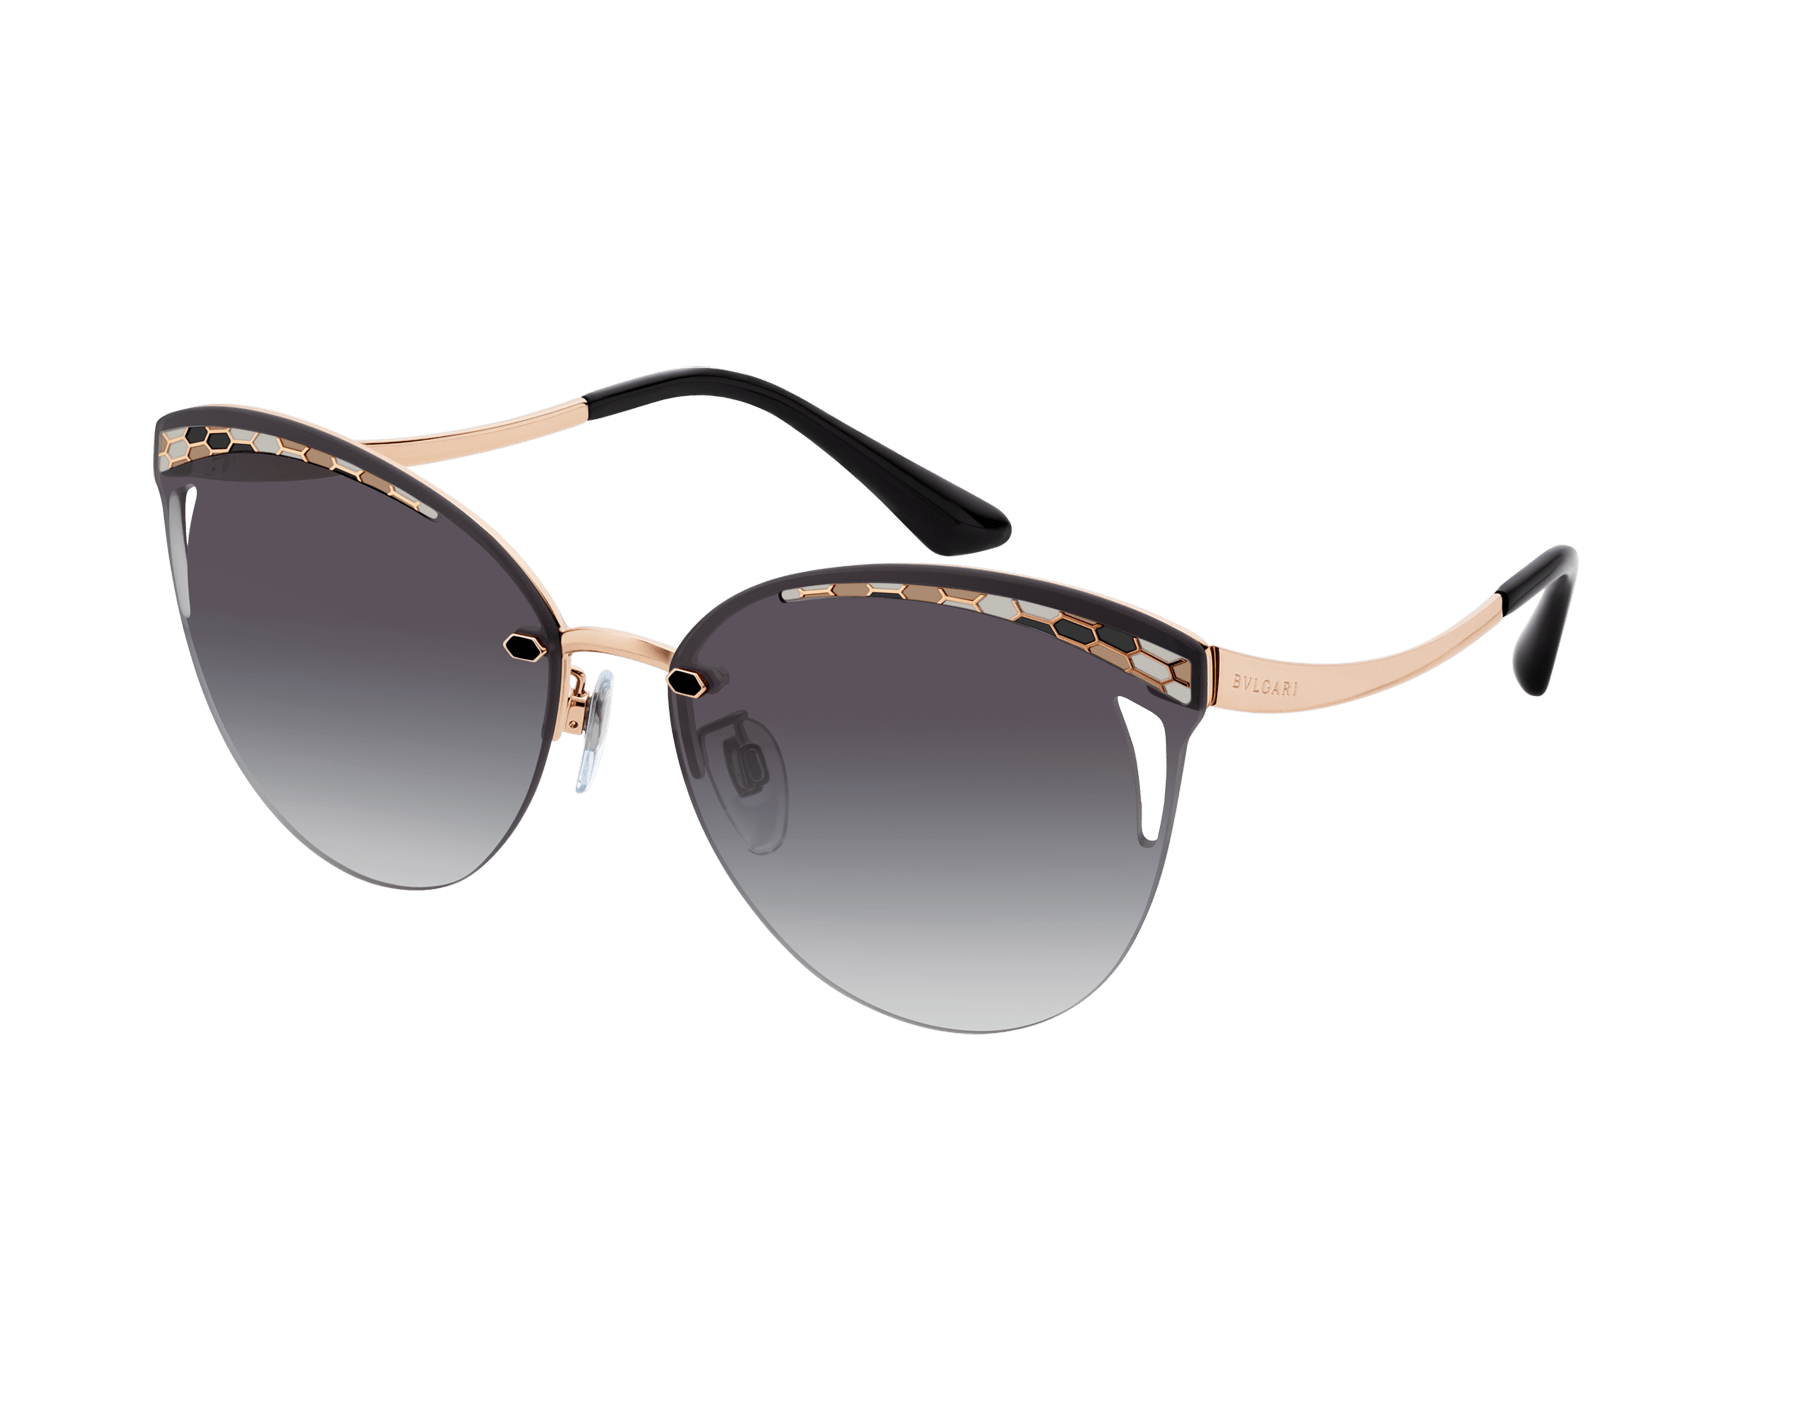 Bvlgari Serpentine Rainbow Scales semi-rimless cat-eye metal sunglasses 903639 image 1